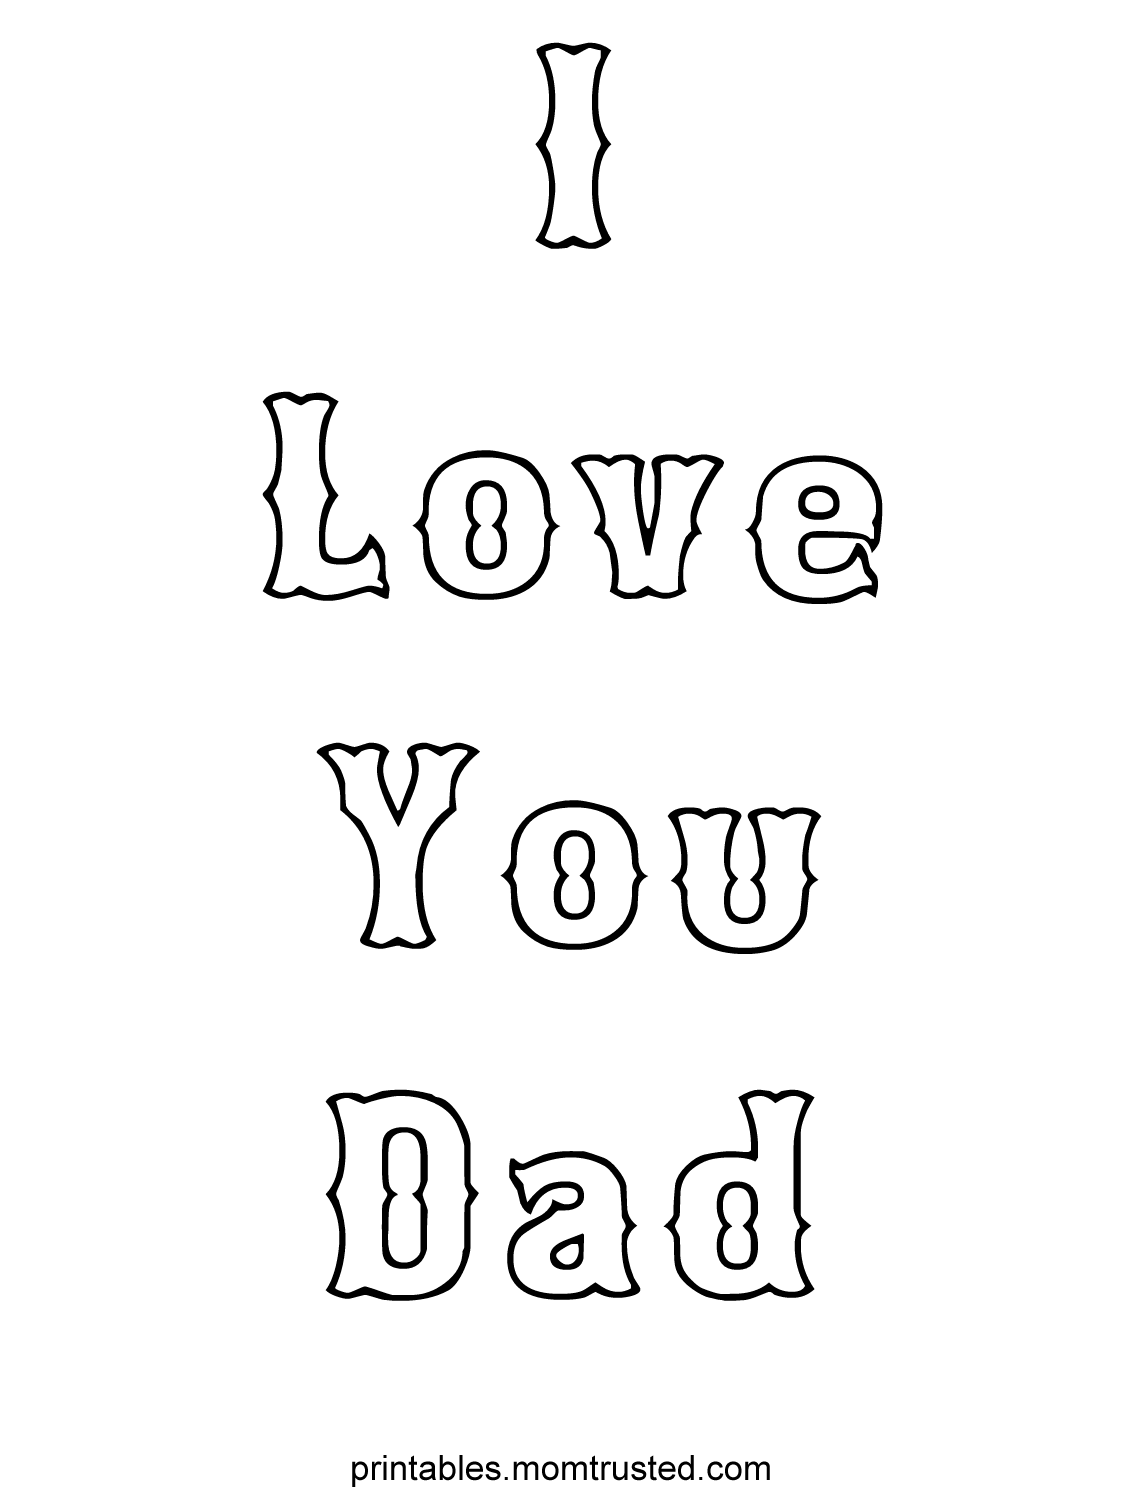 i love you dad coloring sheet preschool activities and printablespreschool activities and printables - Dad Coloring Pages